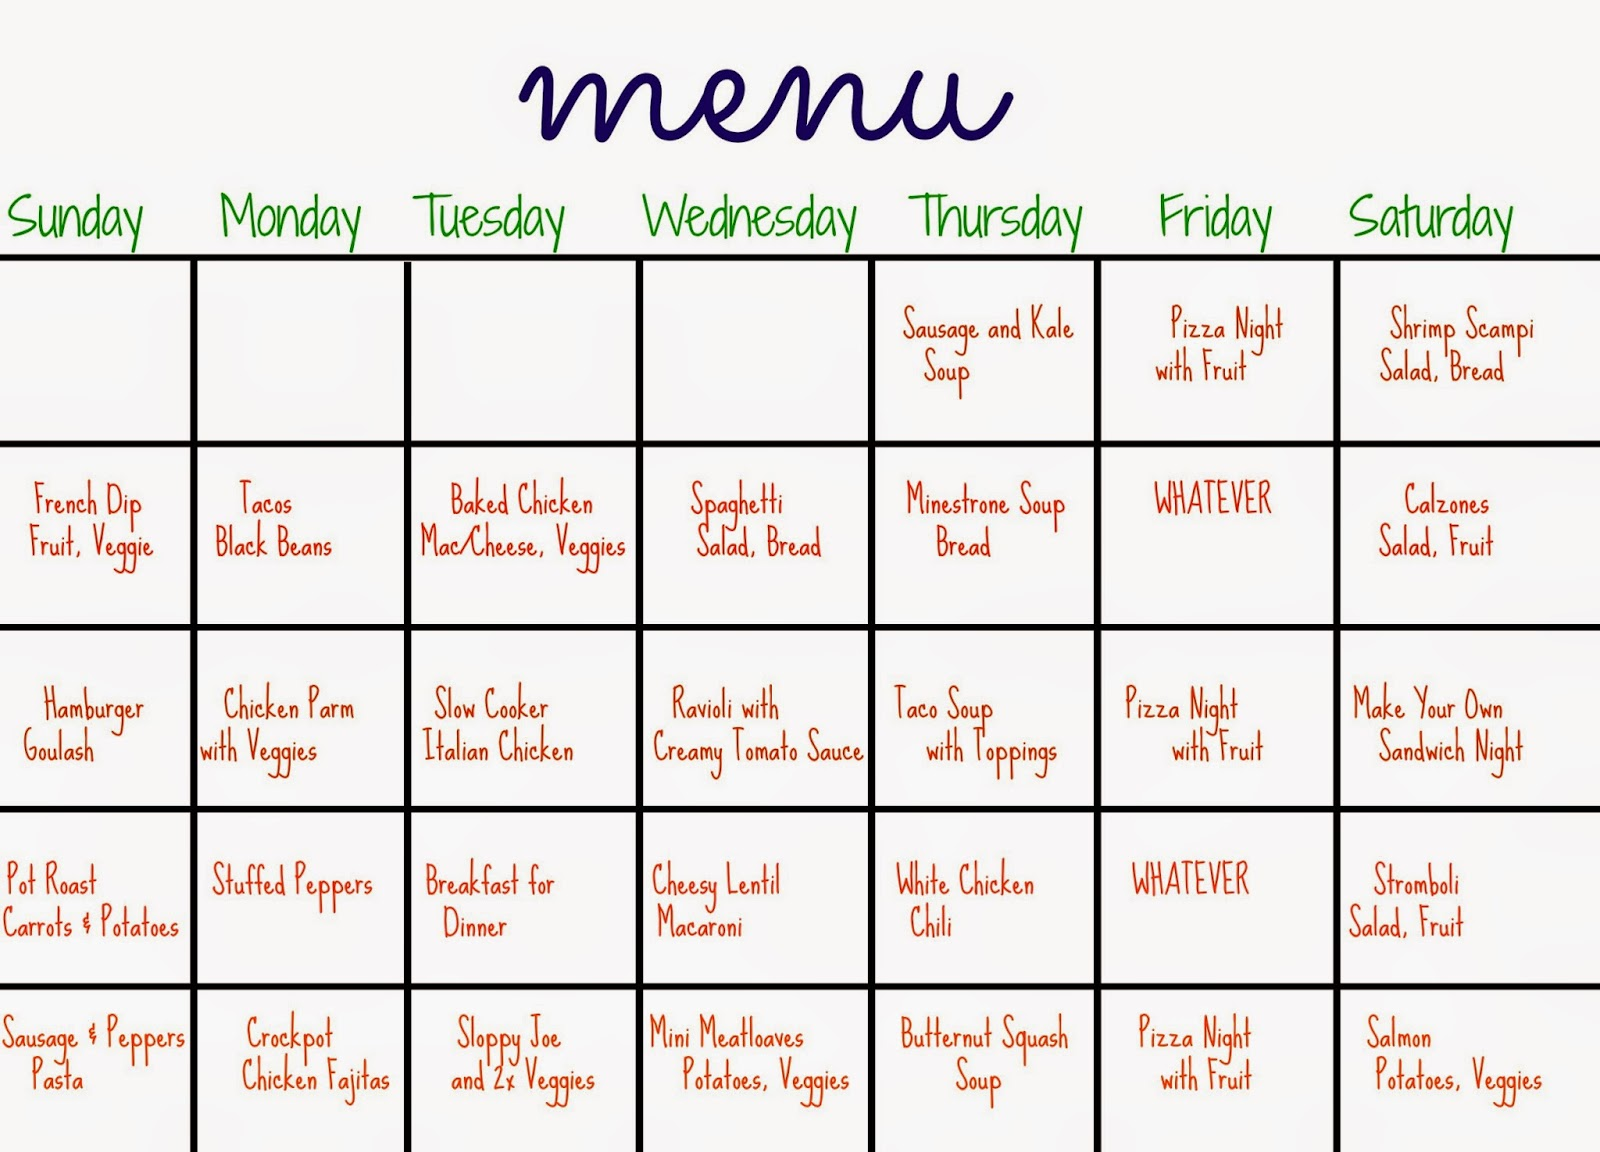 21 Diner Menu Tips 31 Days Of Dinners A Menu Plan For The Whole Month The